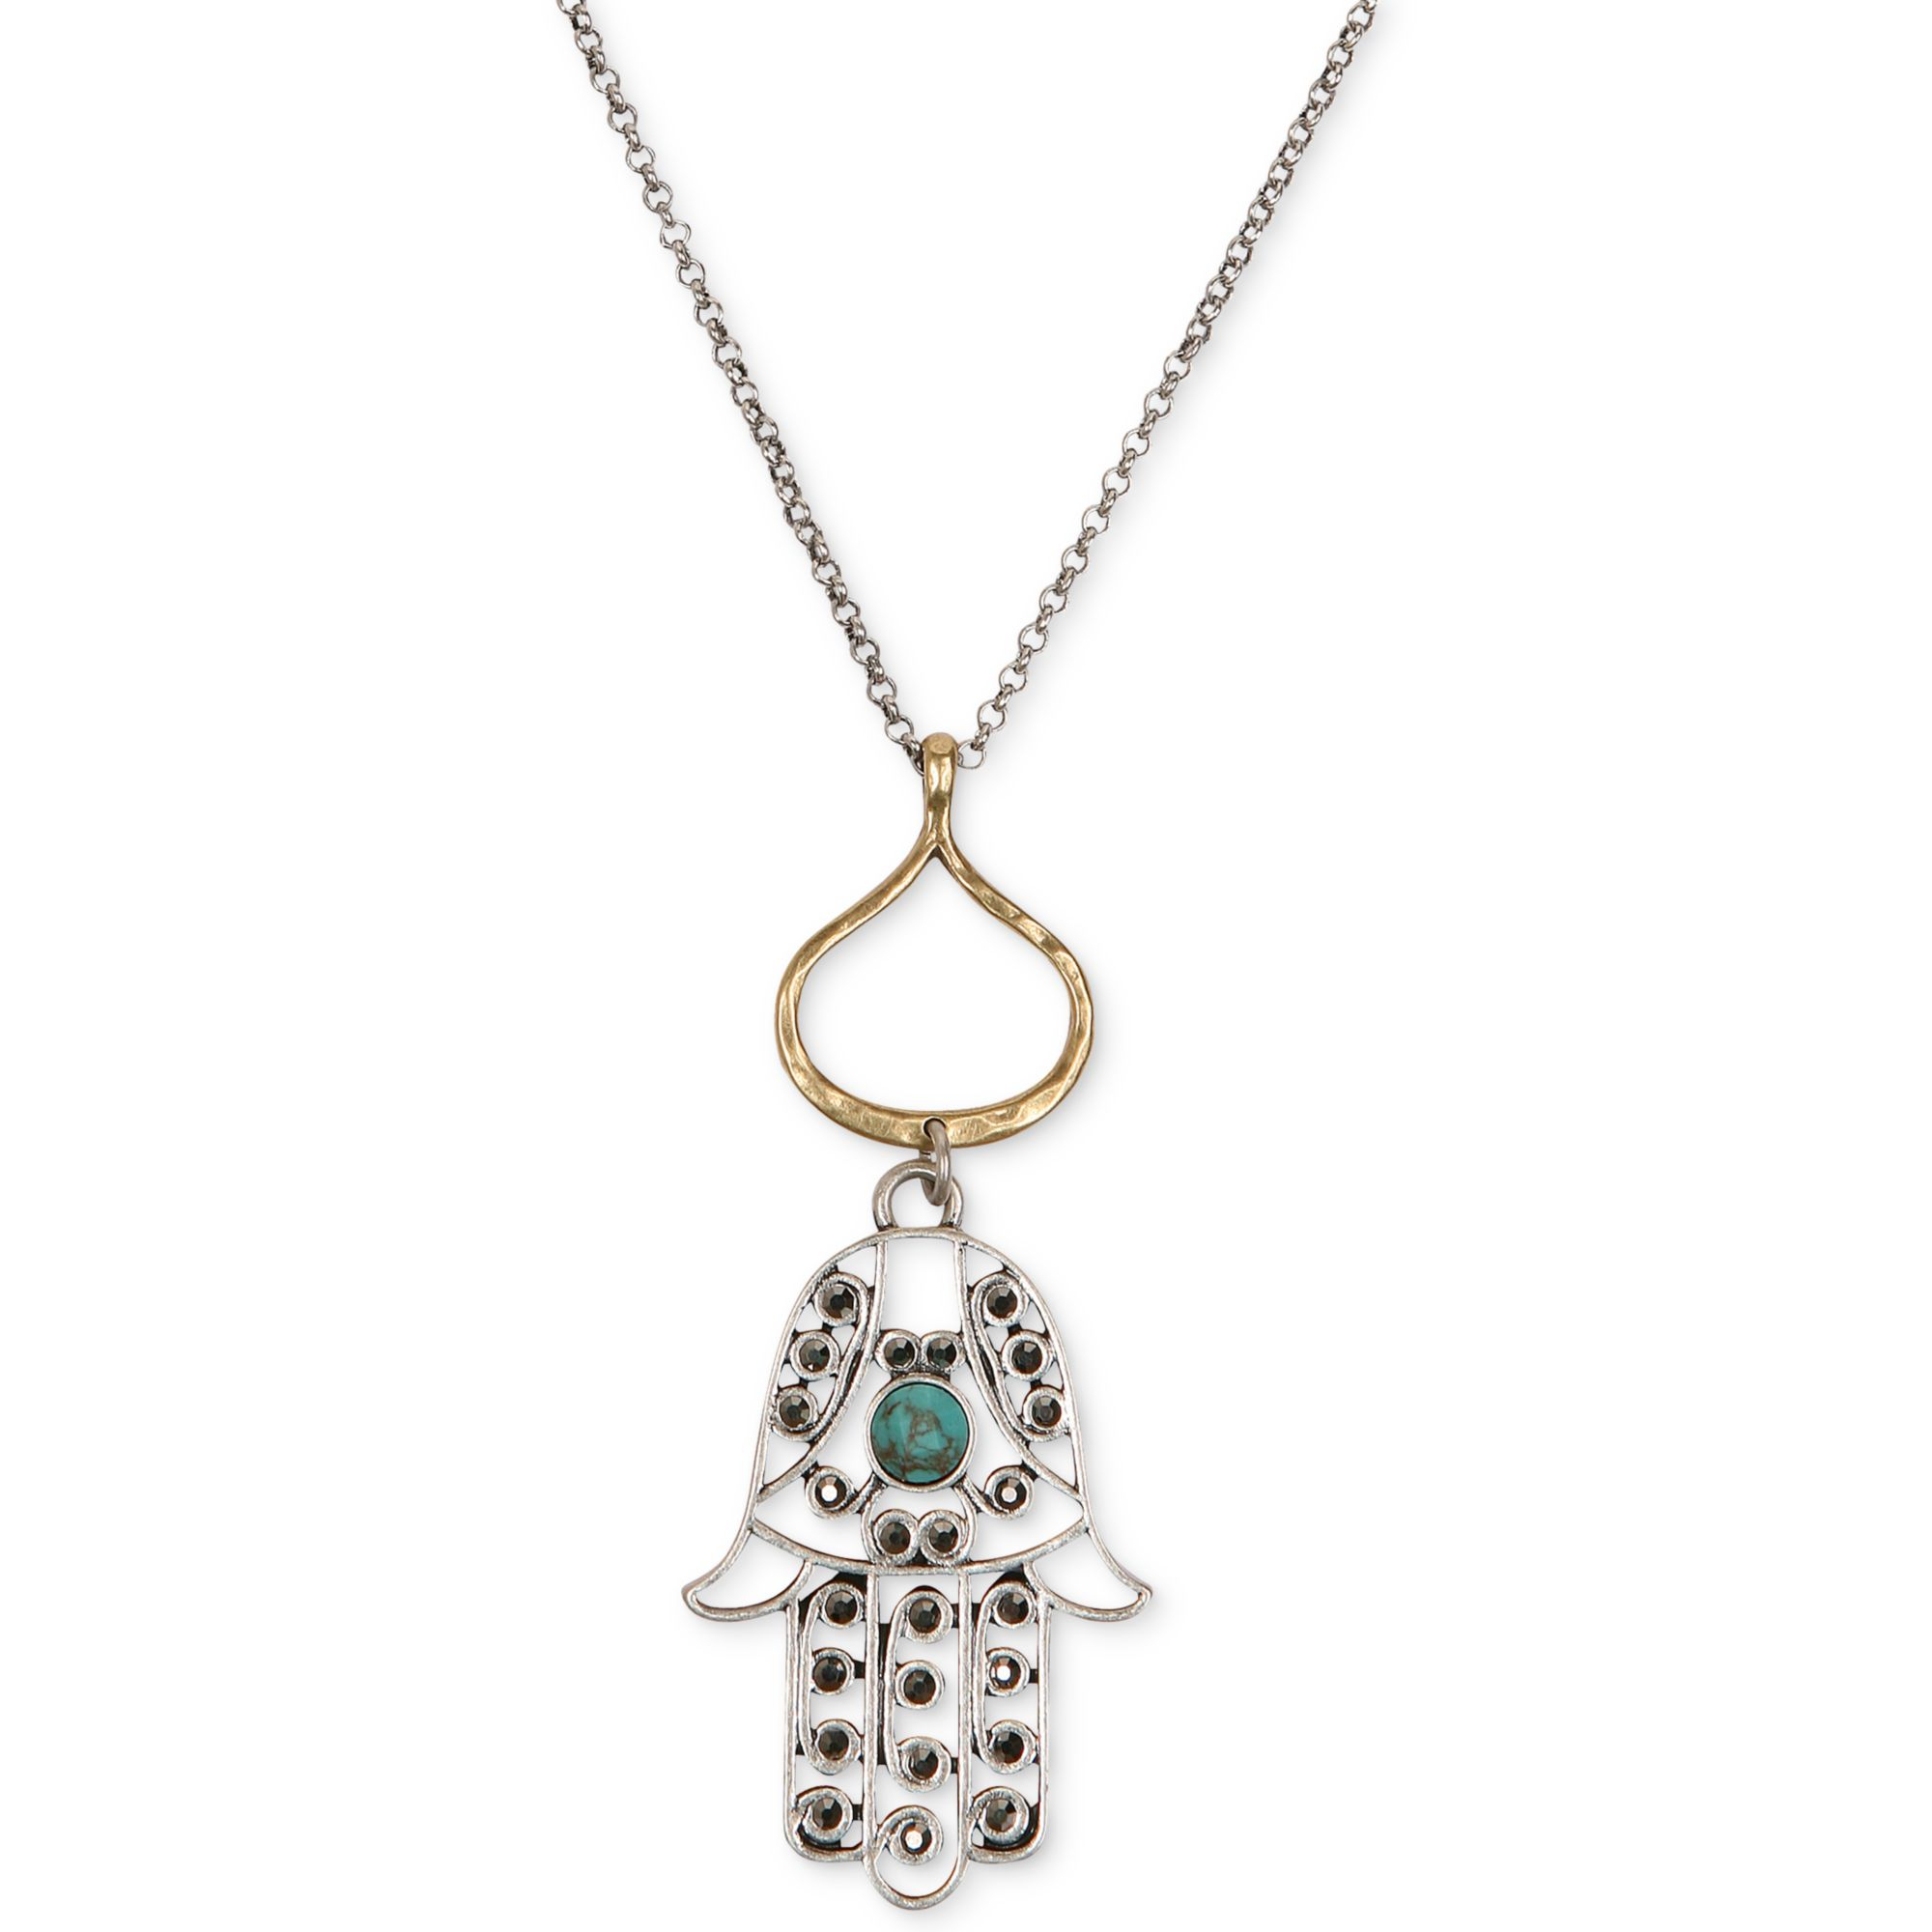 Lyst  Lucky Brand Twotone Lapis And Turquoise Hamsa. Diamond Chain Chains. 2 Kilo Gold Chains. 6mm Chains. End Watch Chains. Necklace Set Chains. Editing Chains. Vaddanam Chains. Karat Gold Chains